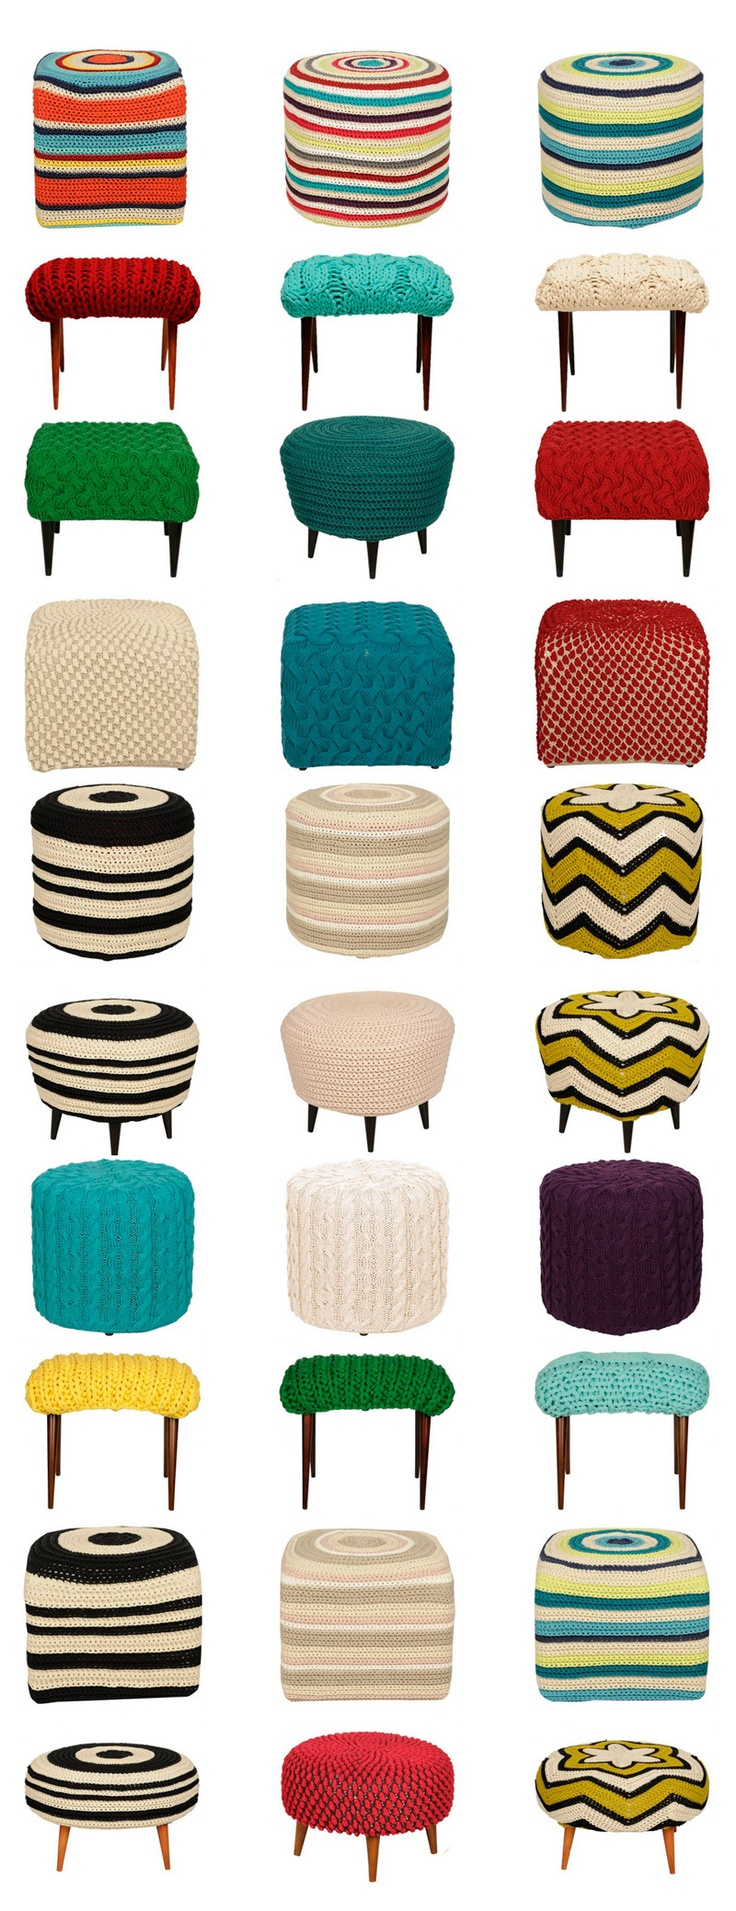 puffs trico e croche zizi maria - stool covers